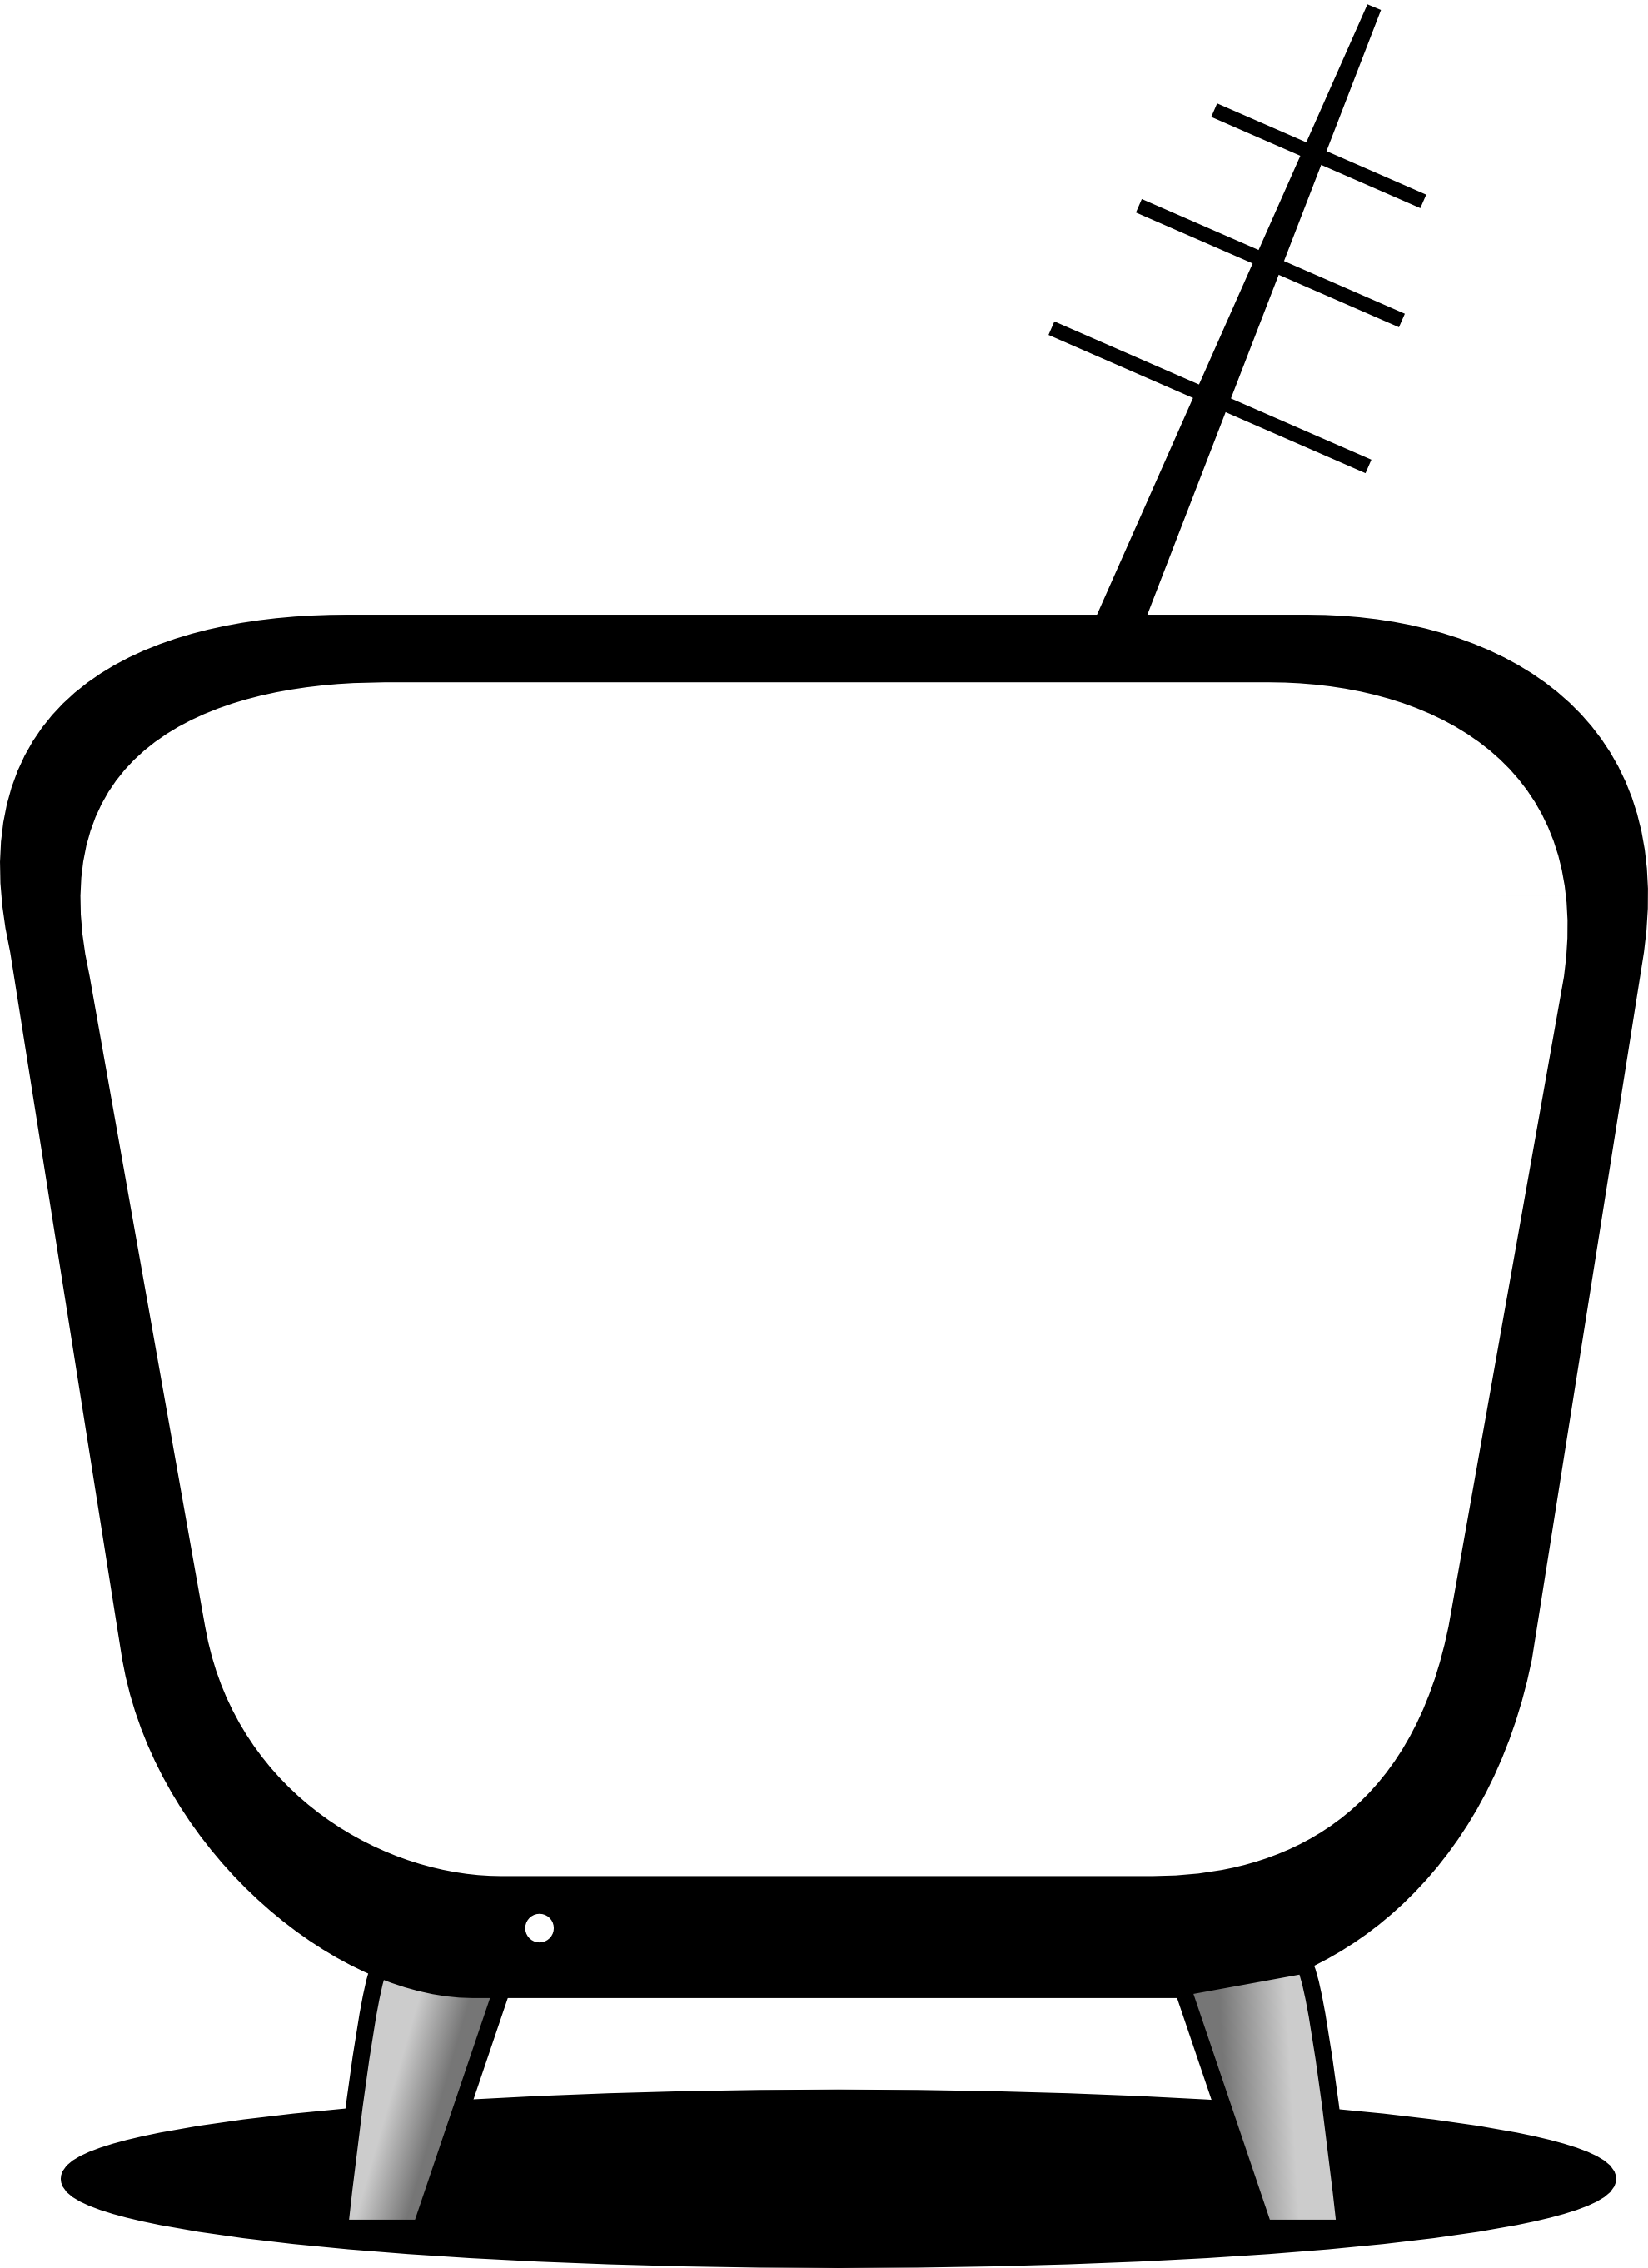 Tv clipart hd tv. Black and white images